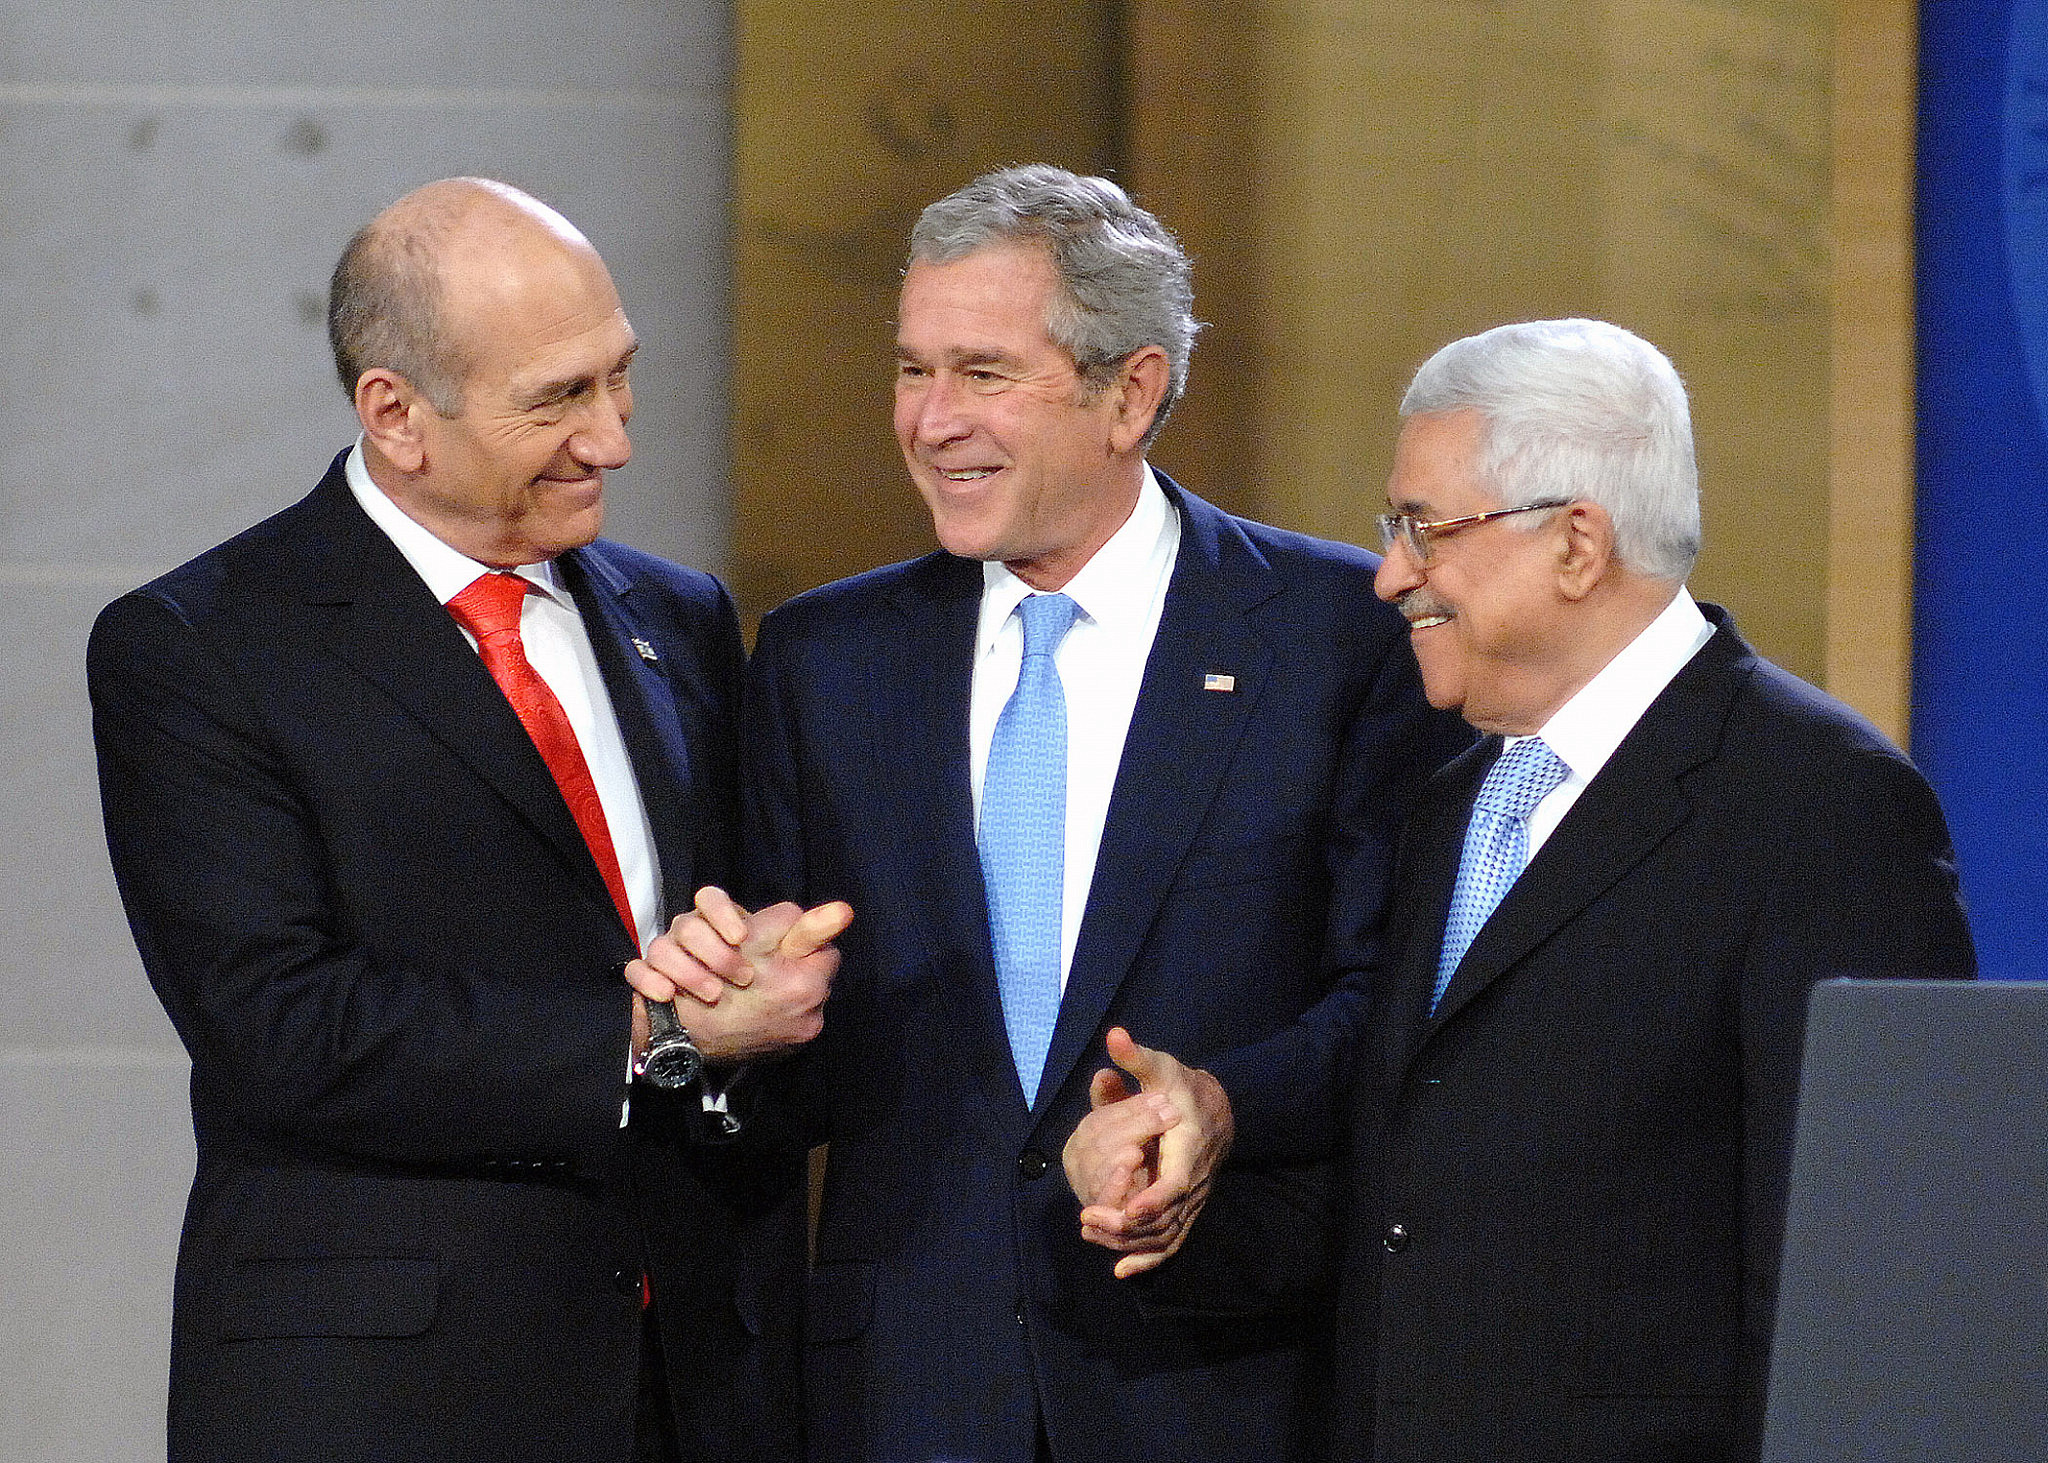 Israeli Prime Minister Ehud Olmert, President George W. Bush, and Palestinian President Mahmoud Abbas shake hands at the Annapolis Conference in the Naval Academy's Memorial Hall in Annapolis, Maryland, November 27, 2007.(Gin Kai/U.S. Navy)